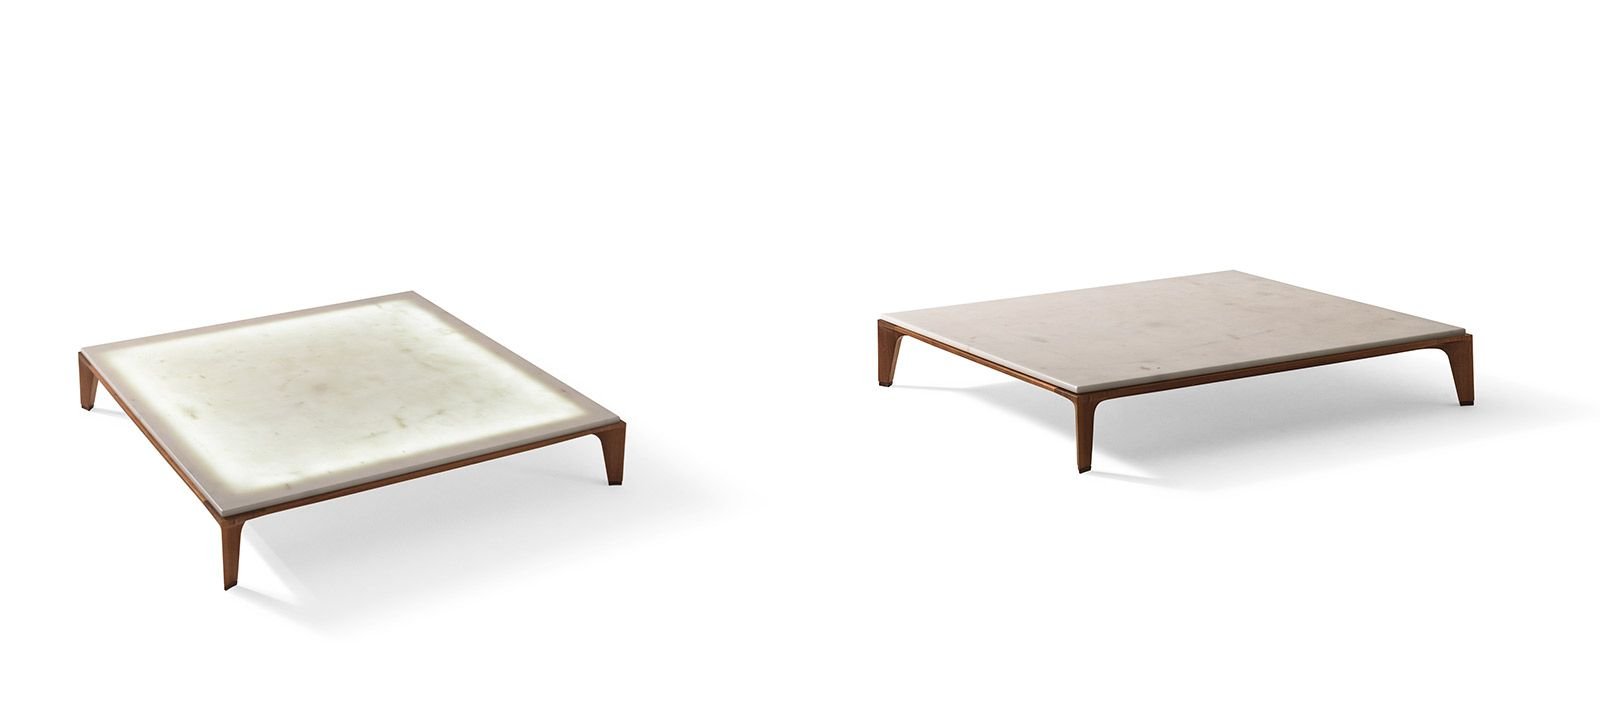 Reverso Coffee Table by Massimo Scolari